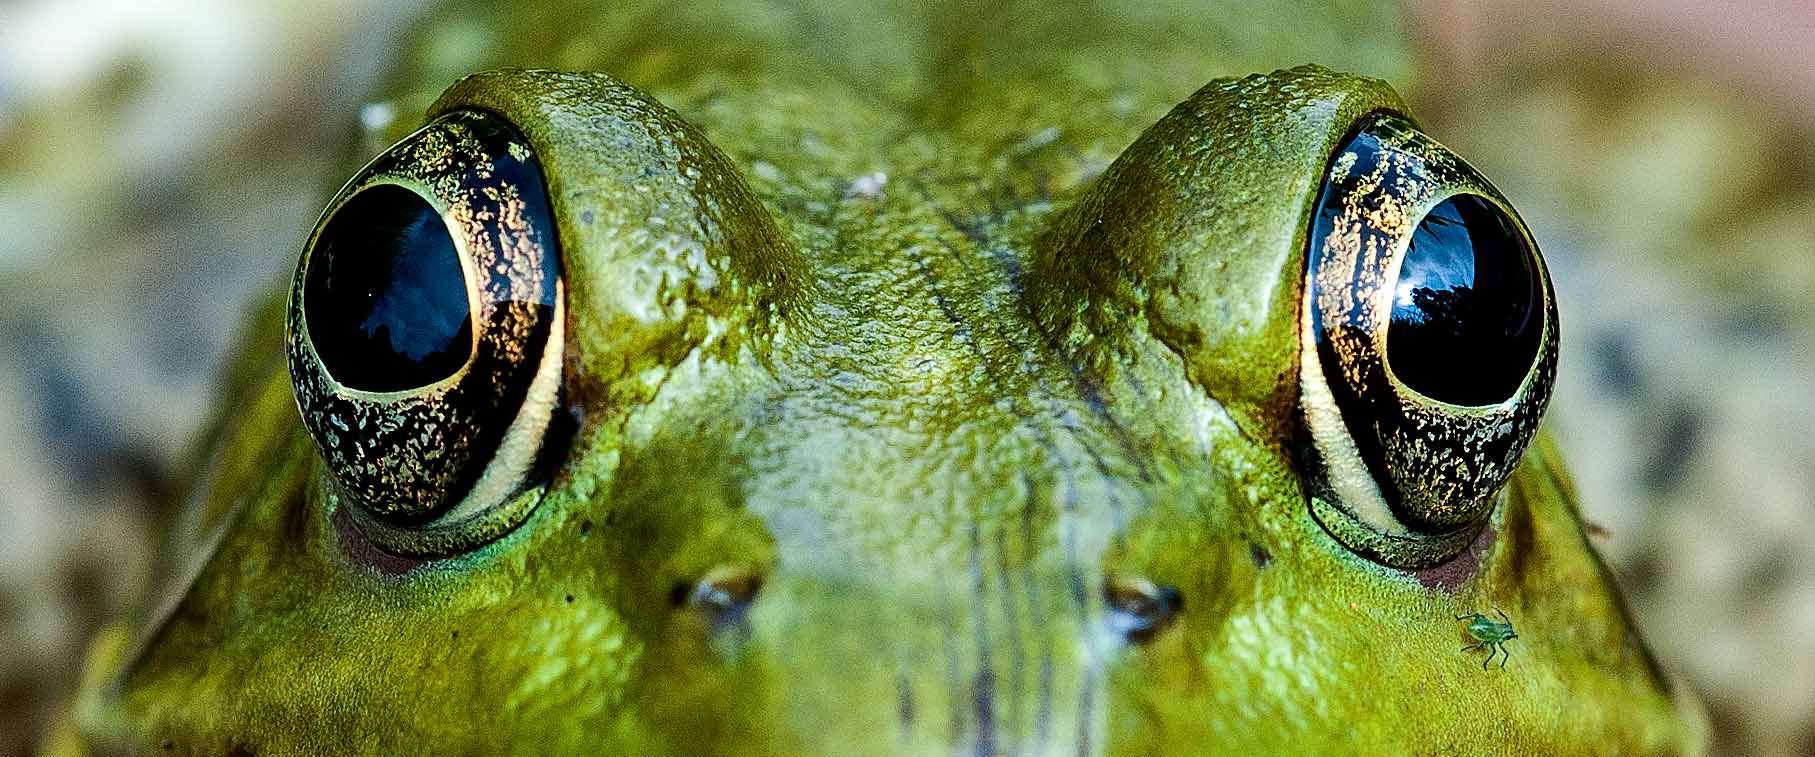 Starting a photography business. Macro of photograph of a bull frog's face and eyes